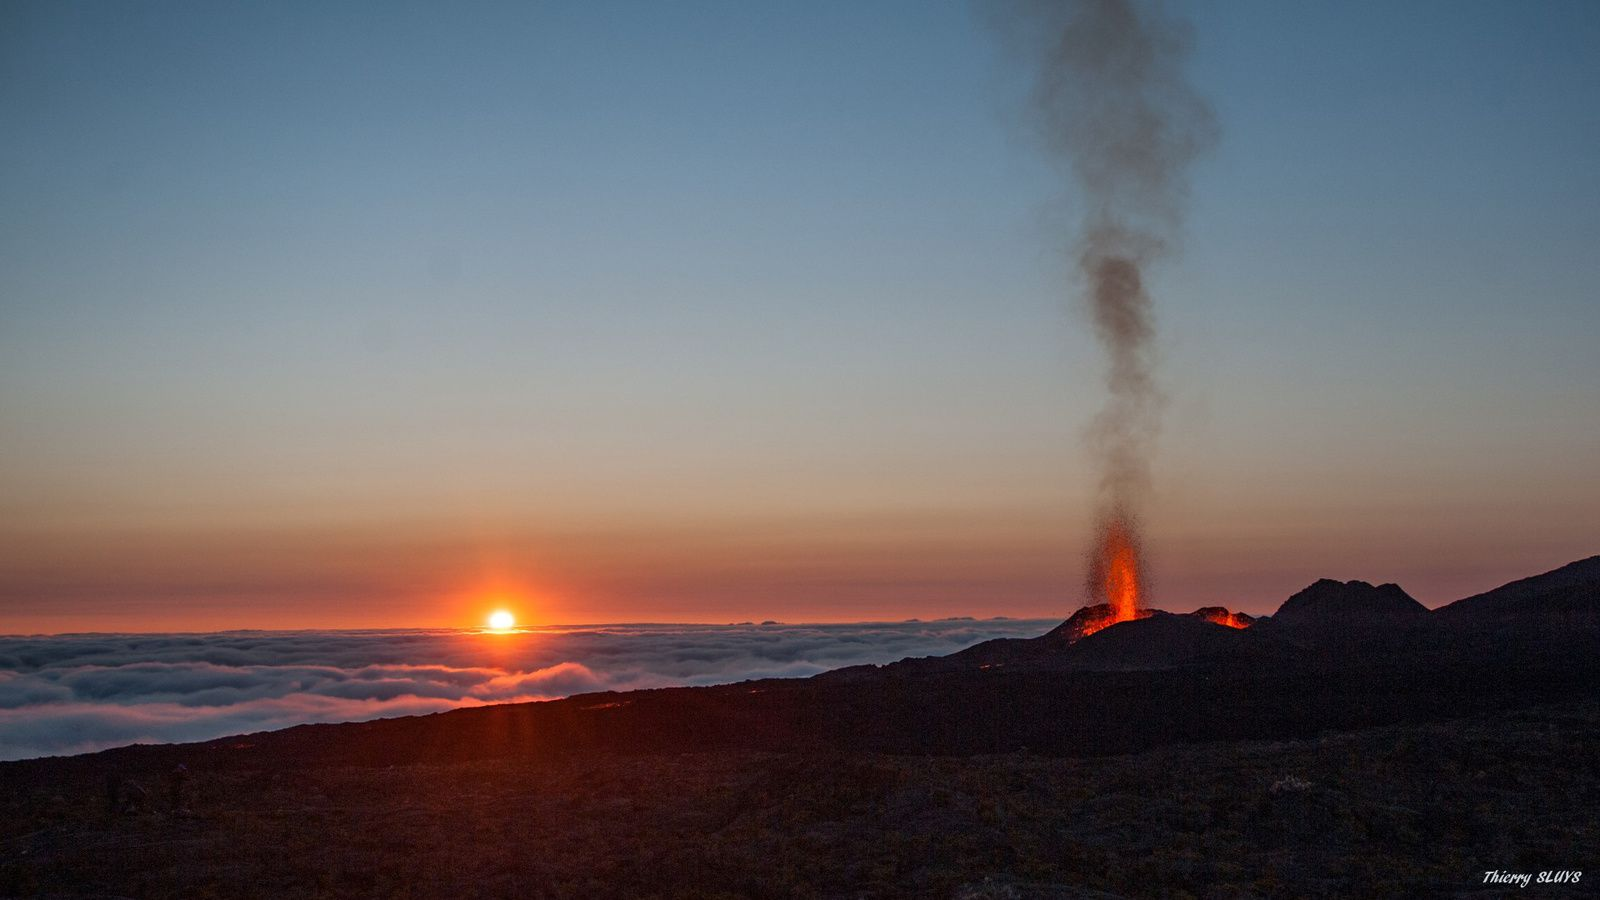 Piton de La fournaise - lever de soleil sur l'éruption le 15.09.2016 - photo © Thierry Sluys